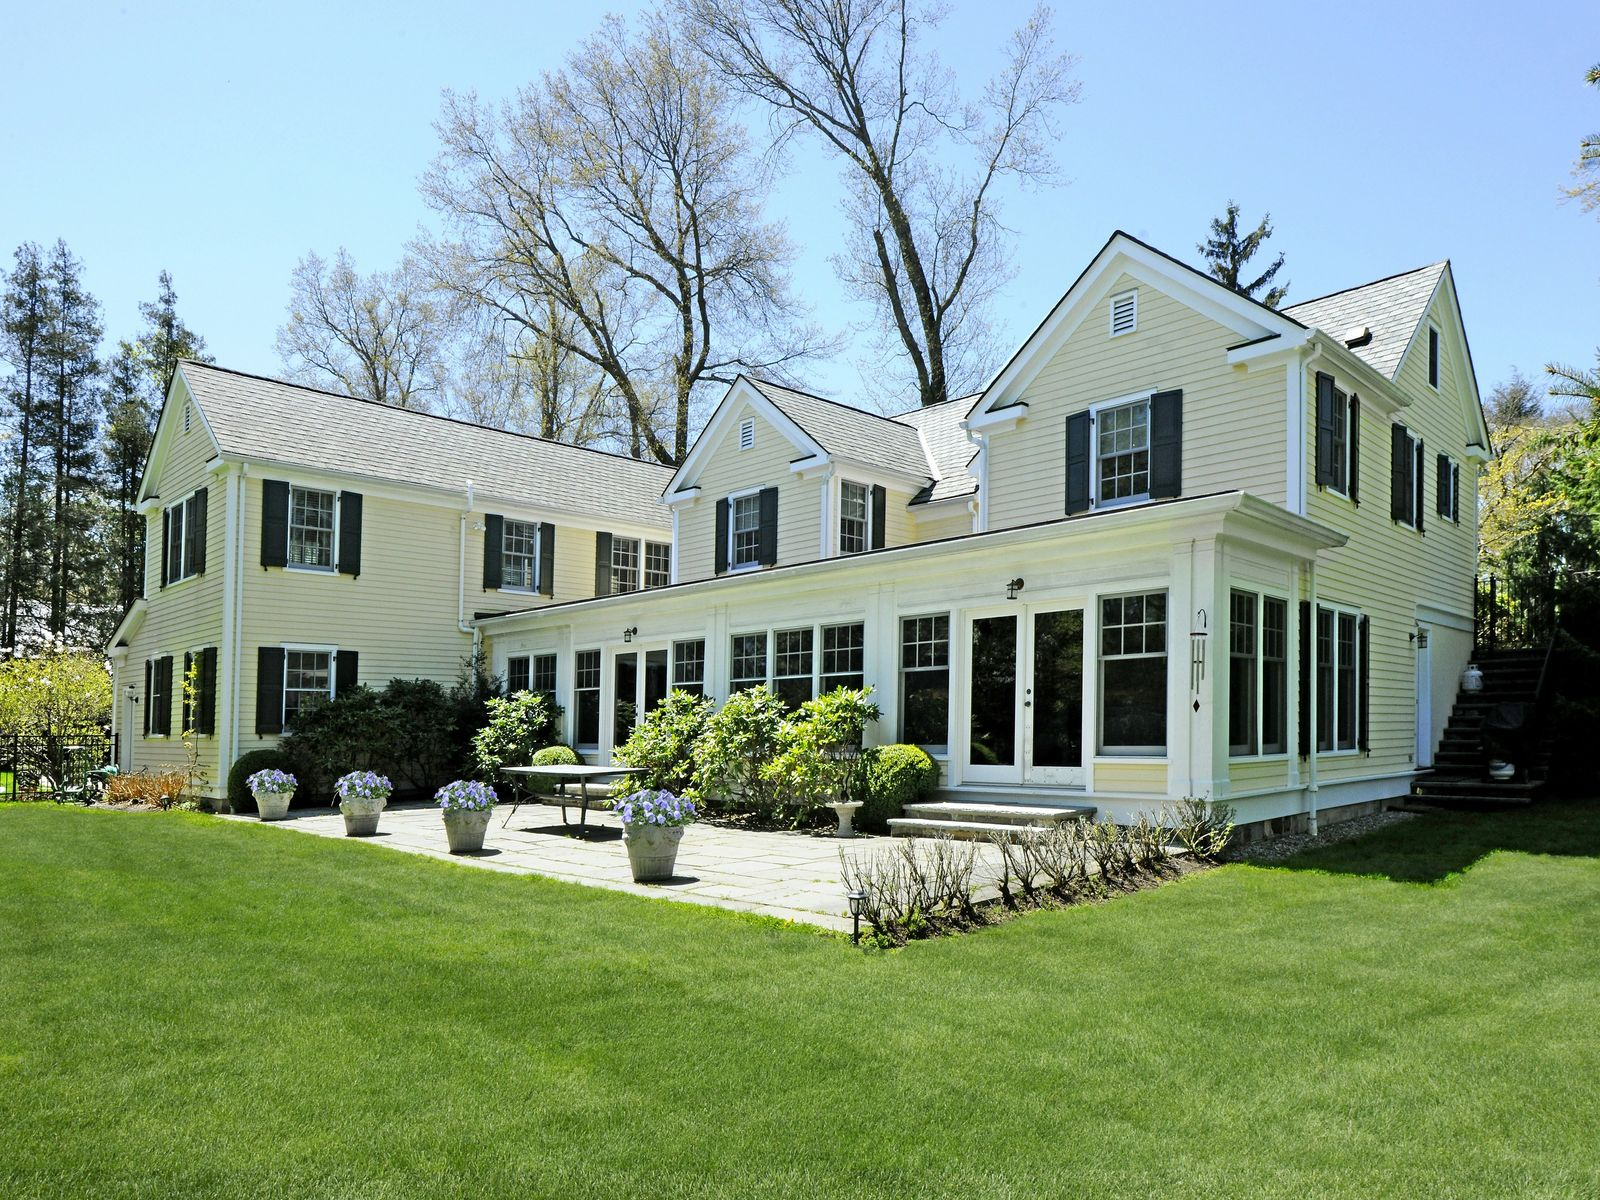 North Street Charmer, Greenwich CT Single Family Home - Greenwich Real Estate